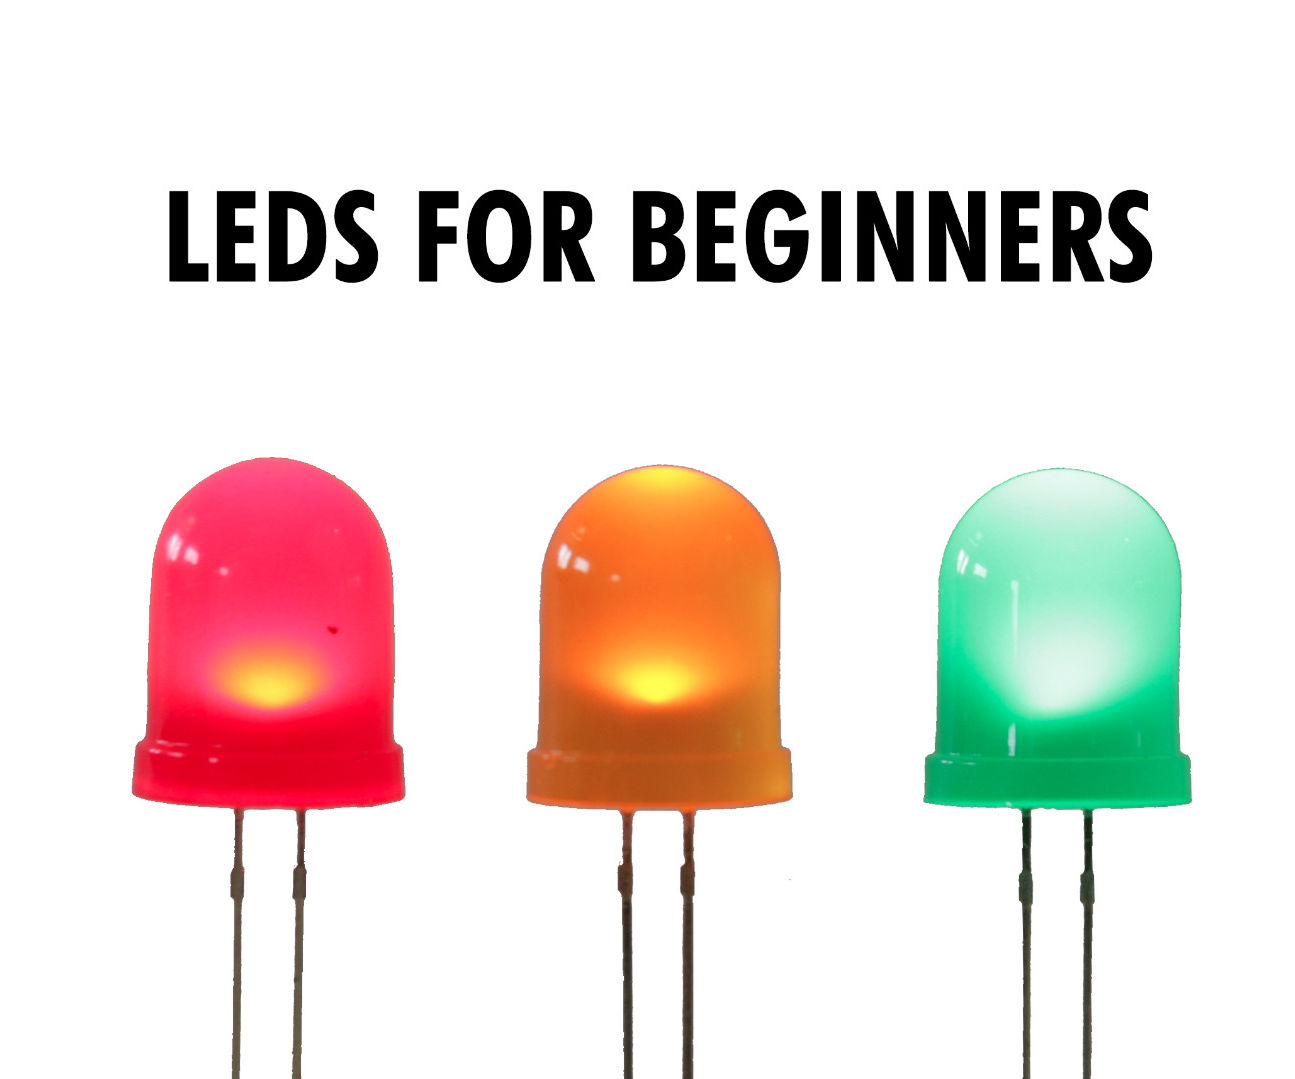 LEDs for Beginners